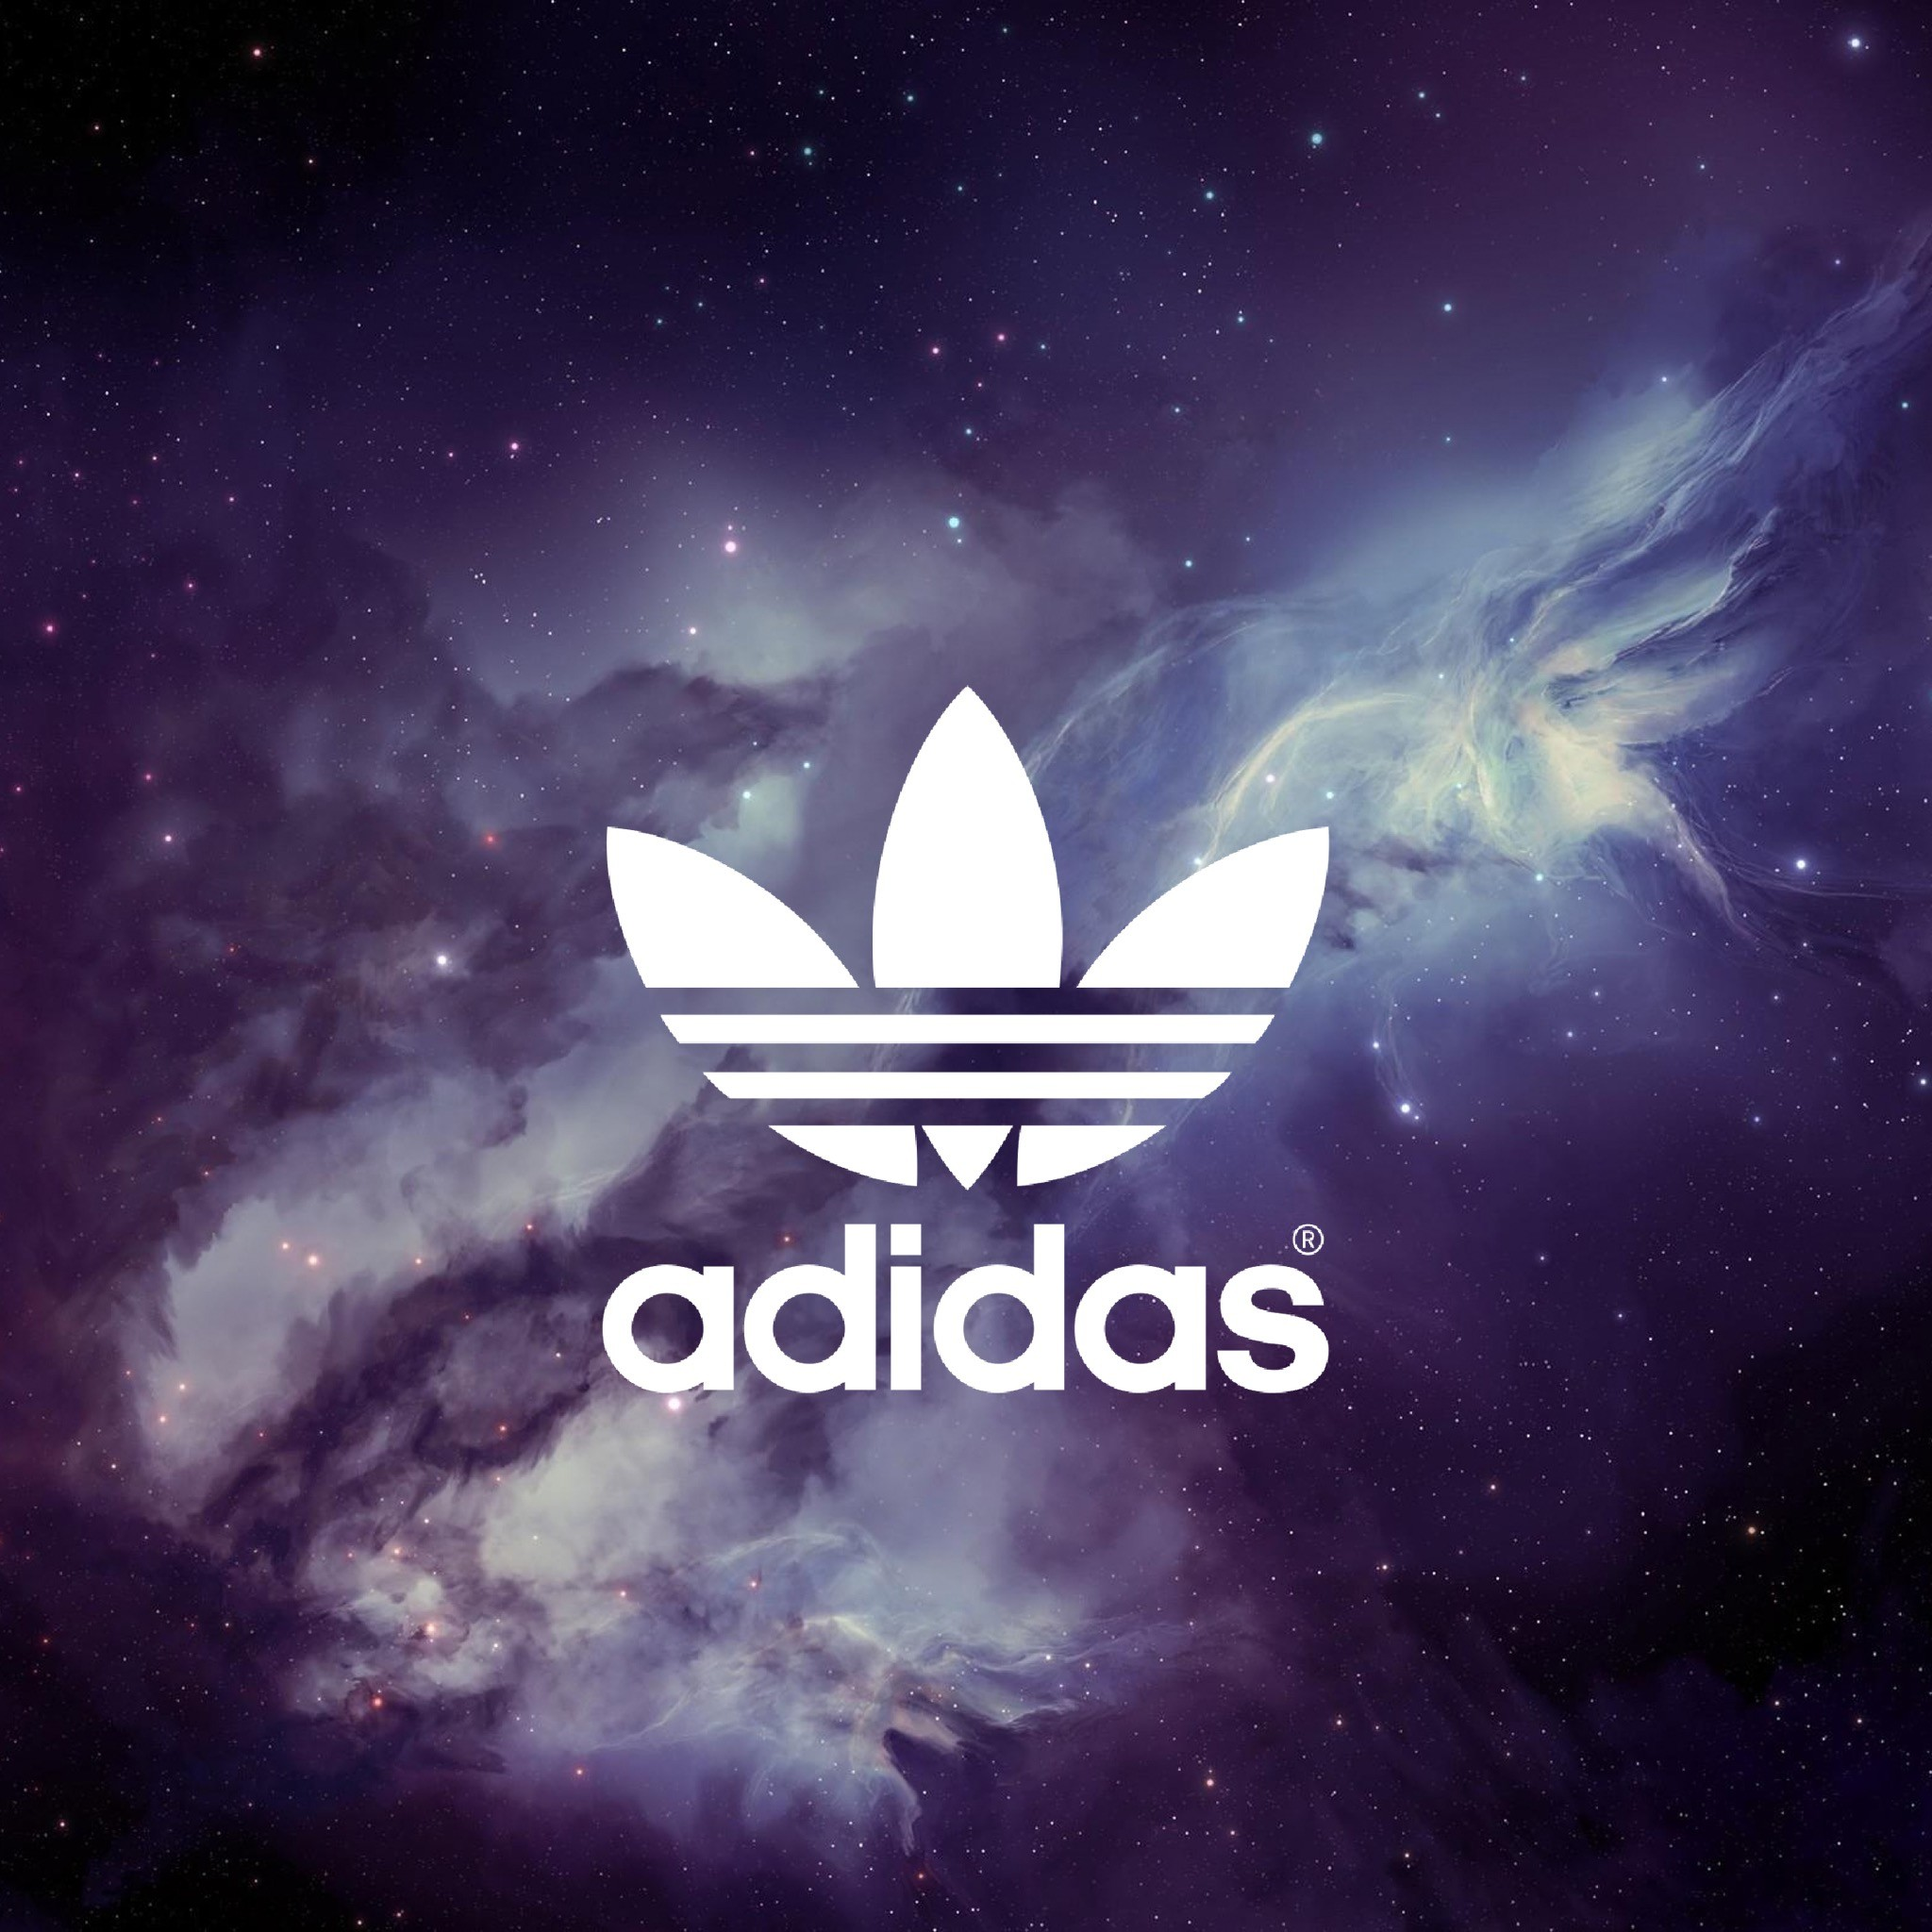 adidas wallpapers 76 images